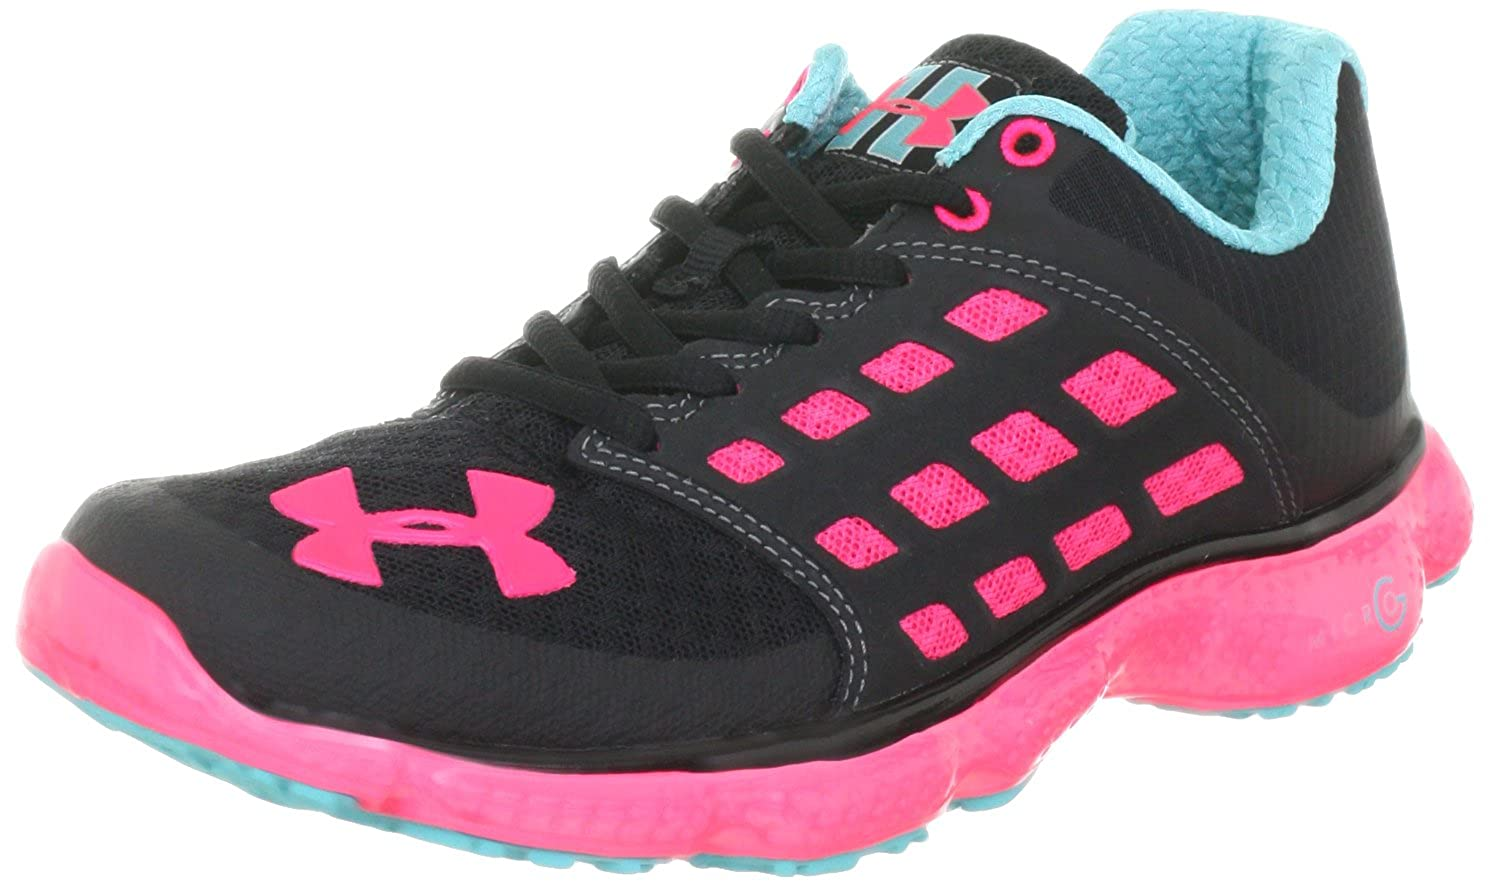 7cc2598752 Under Armour Micro G Connect Women's Running Shoes